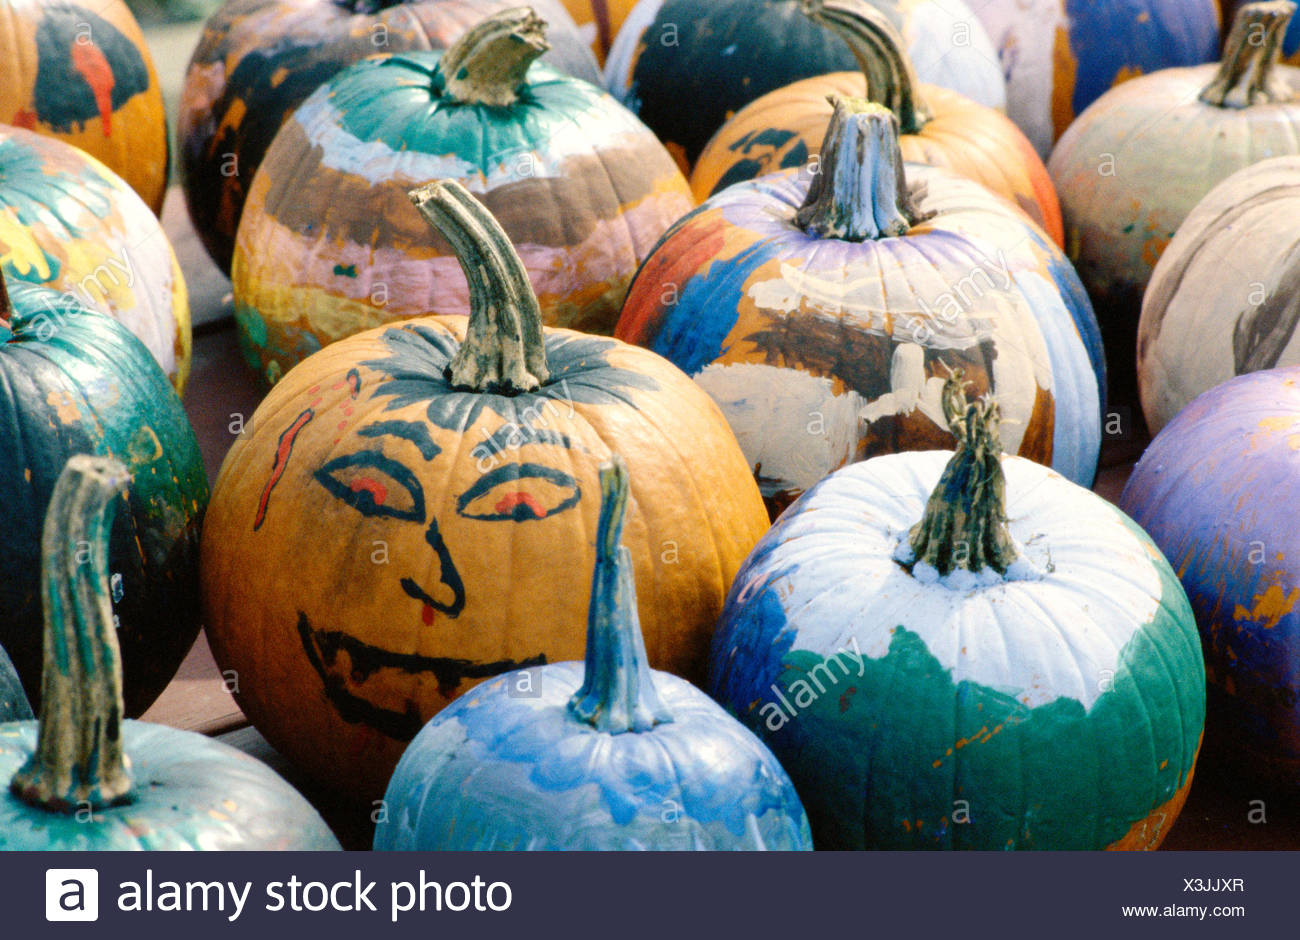 Pumpkins with painted faces for Halloween - Stock Image